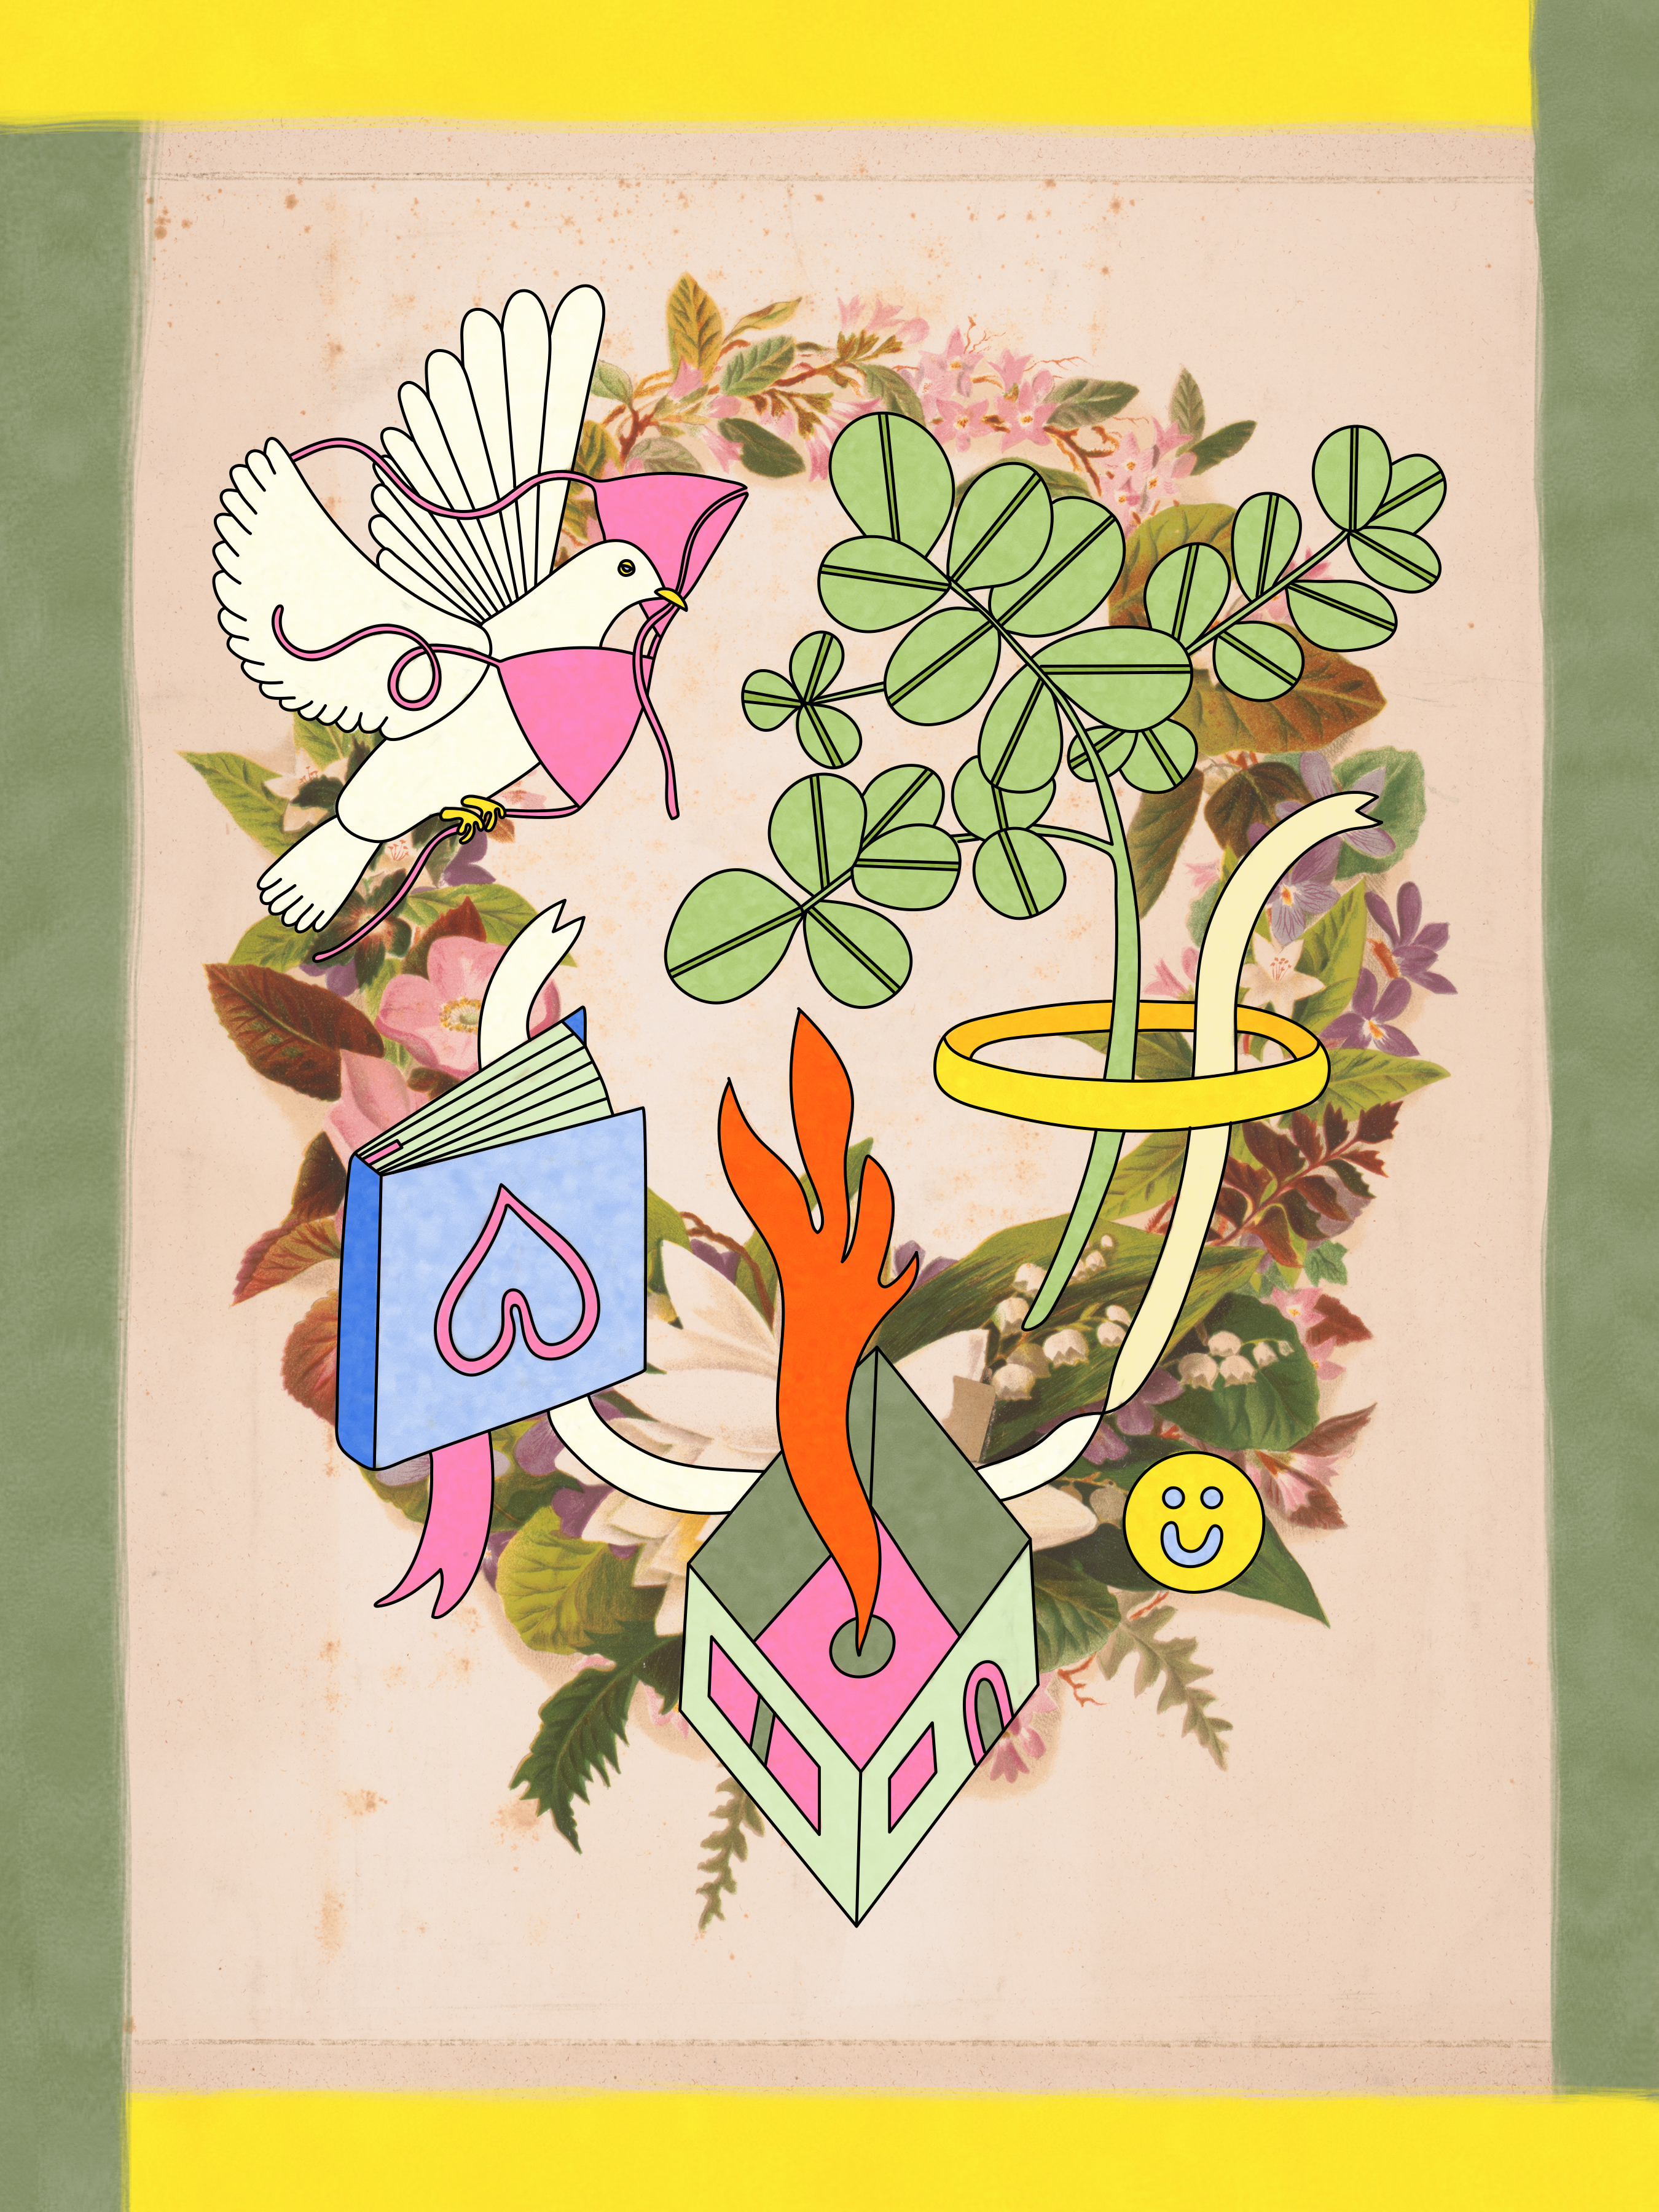 Digital print of dove, book, leaves, ribbon, ring, and burning house